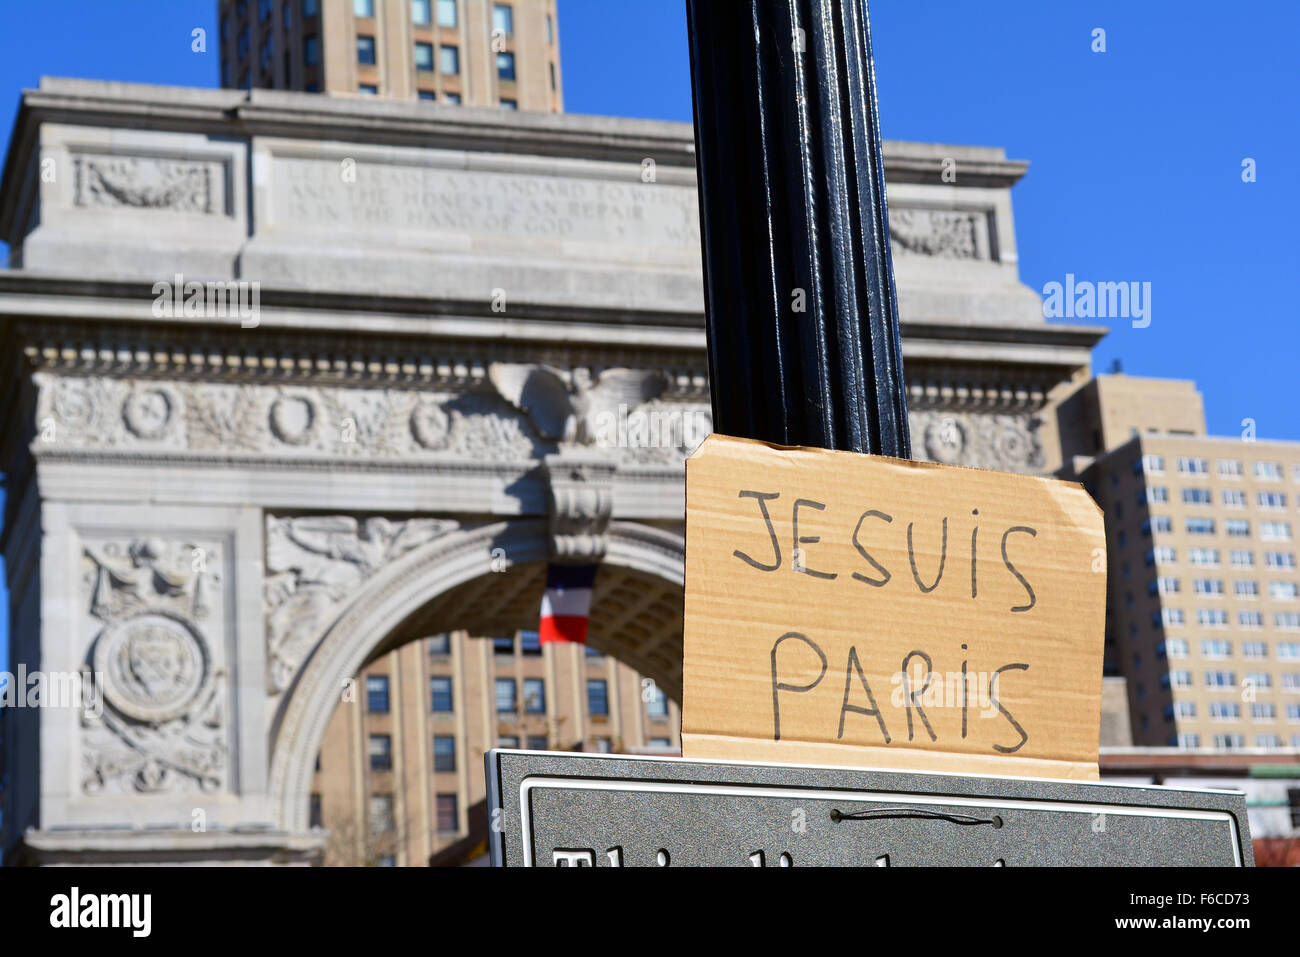 New York, USA. 15th Nov, 2015. Signs of solidarity with Paris in Washingtonn Square Park, New York City. Credit: Stock Photo